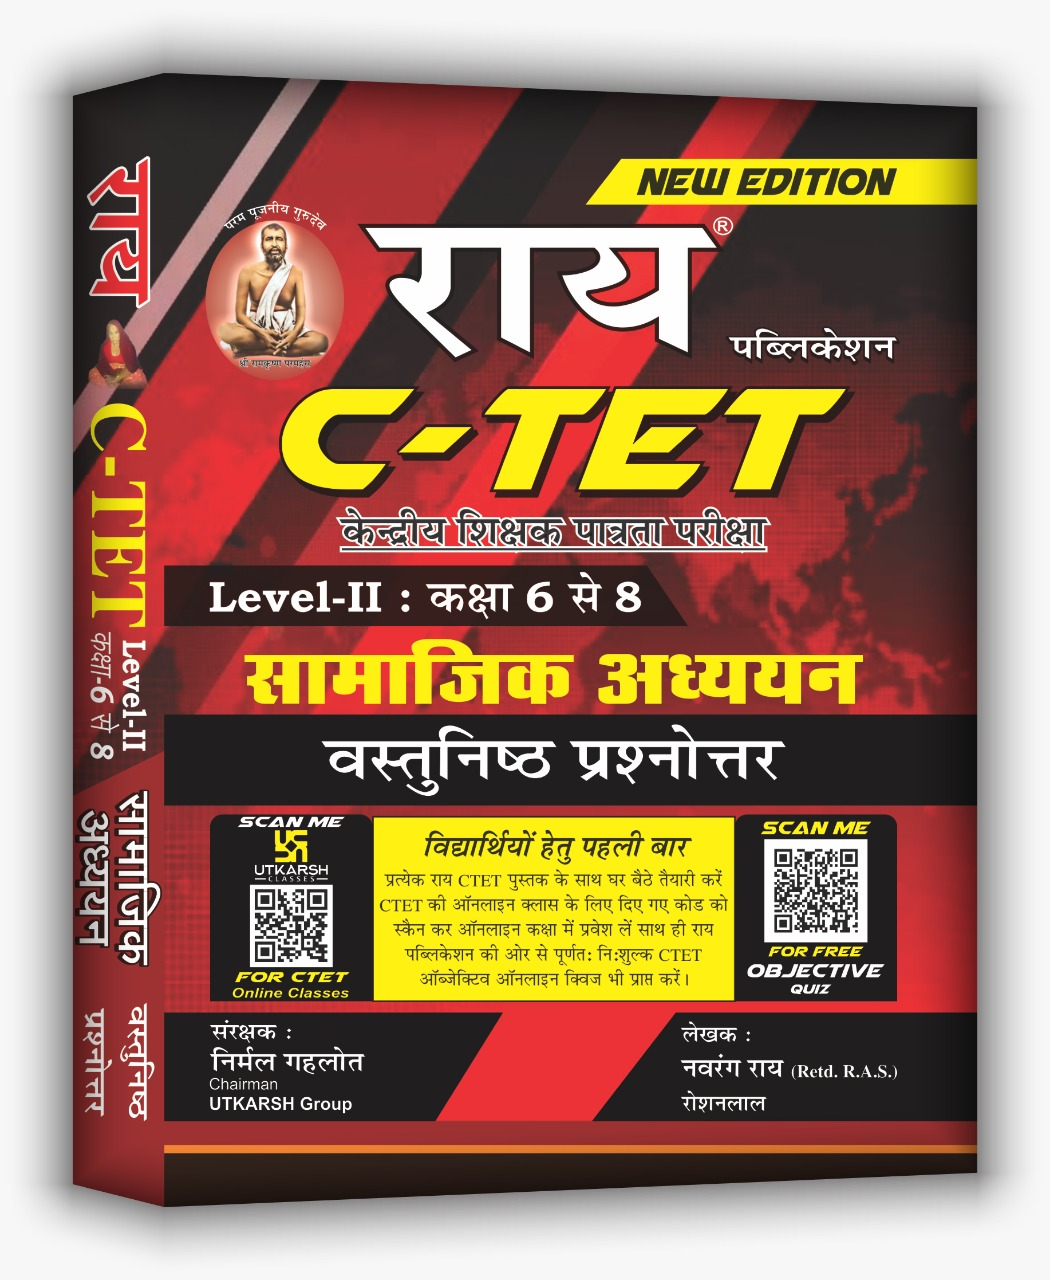 CTET LEVEL - II Class 6 to 8 Samajik Adhyan Objective Book ( Bal Vikas , Bhasha Hindi ,English ,Ganit , samajik adhyan ) (CTET Level - 2 Samajik Adhyan)